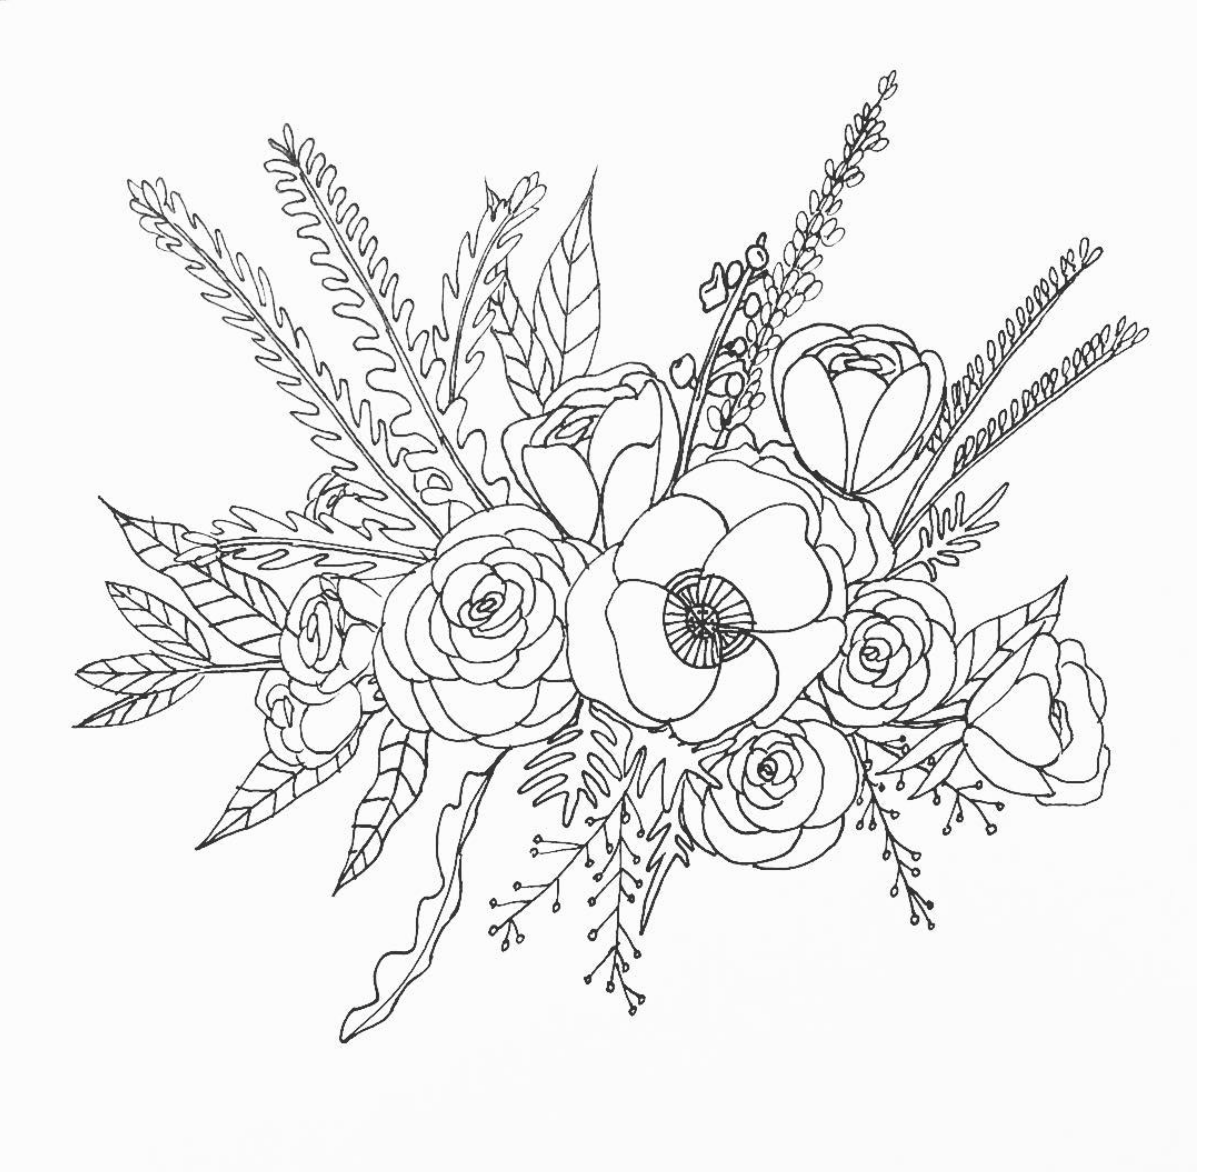 Line Art Flowers : Line drawing flower illustration floral bouquet art